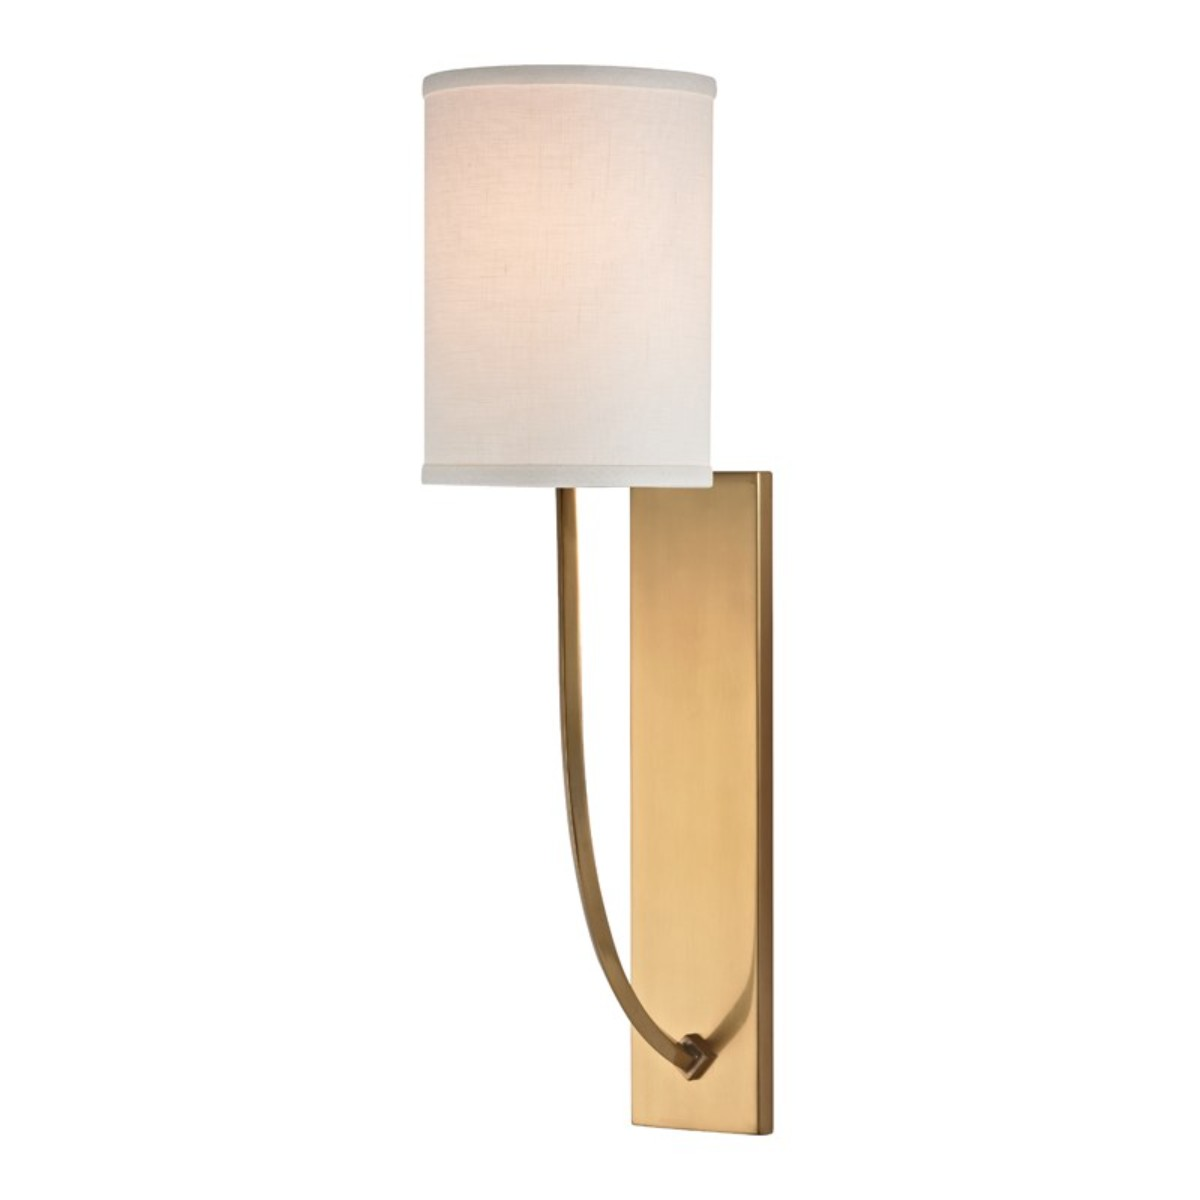 Hudson Valley | Colton Wall Light | Aged Brass